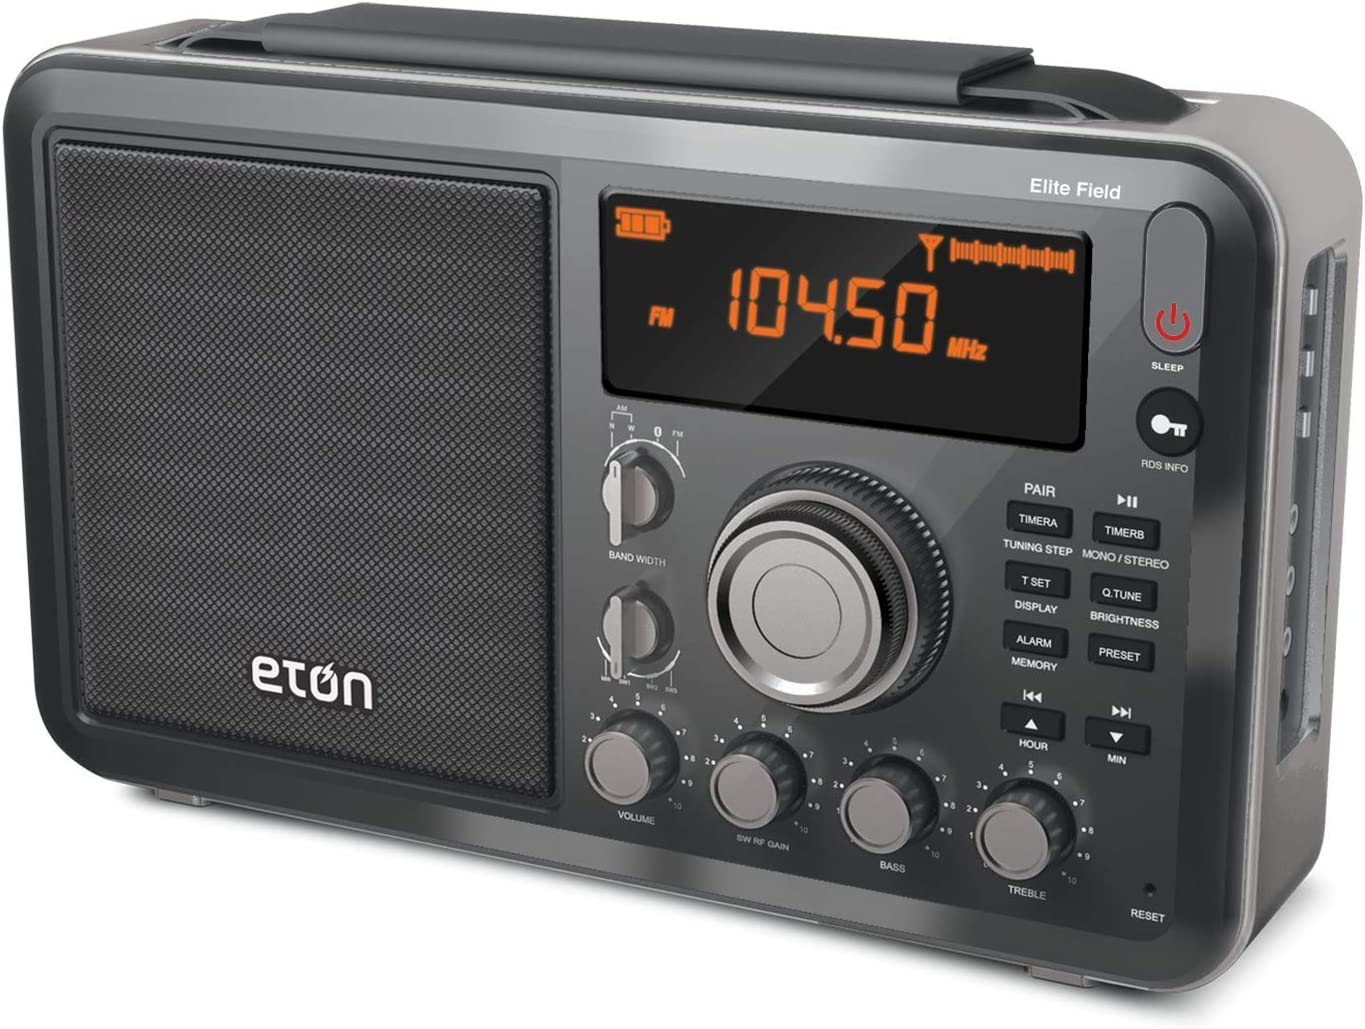 Eton Elite Field AM/FM/Shortwave Desktop Radio with Bluetooth